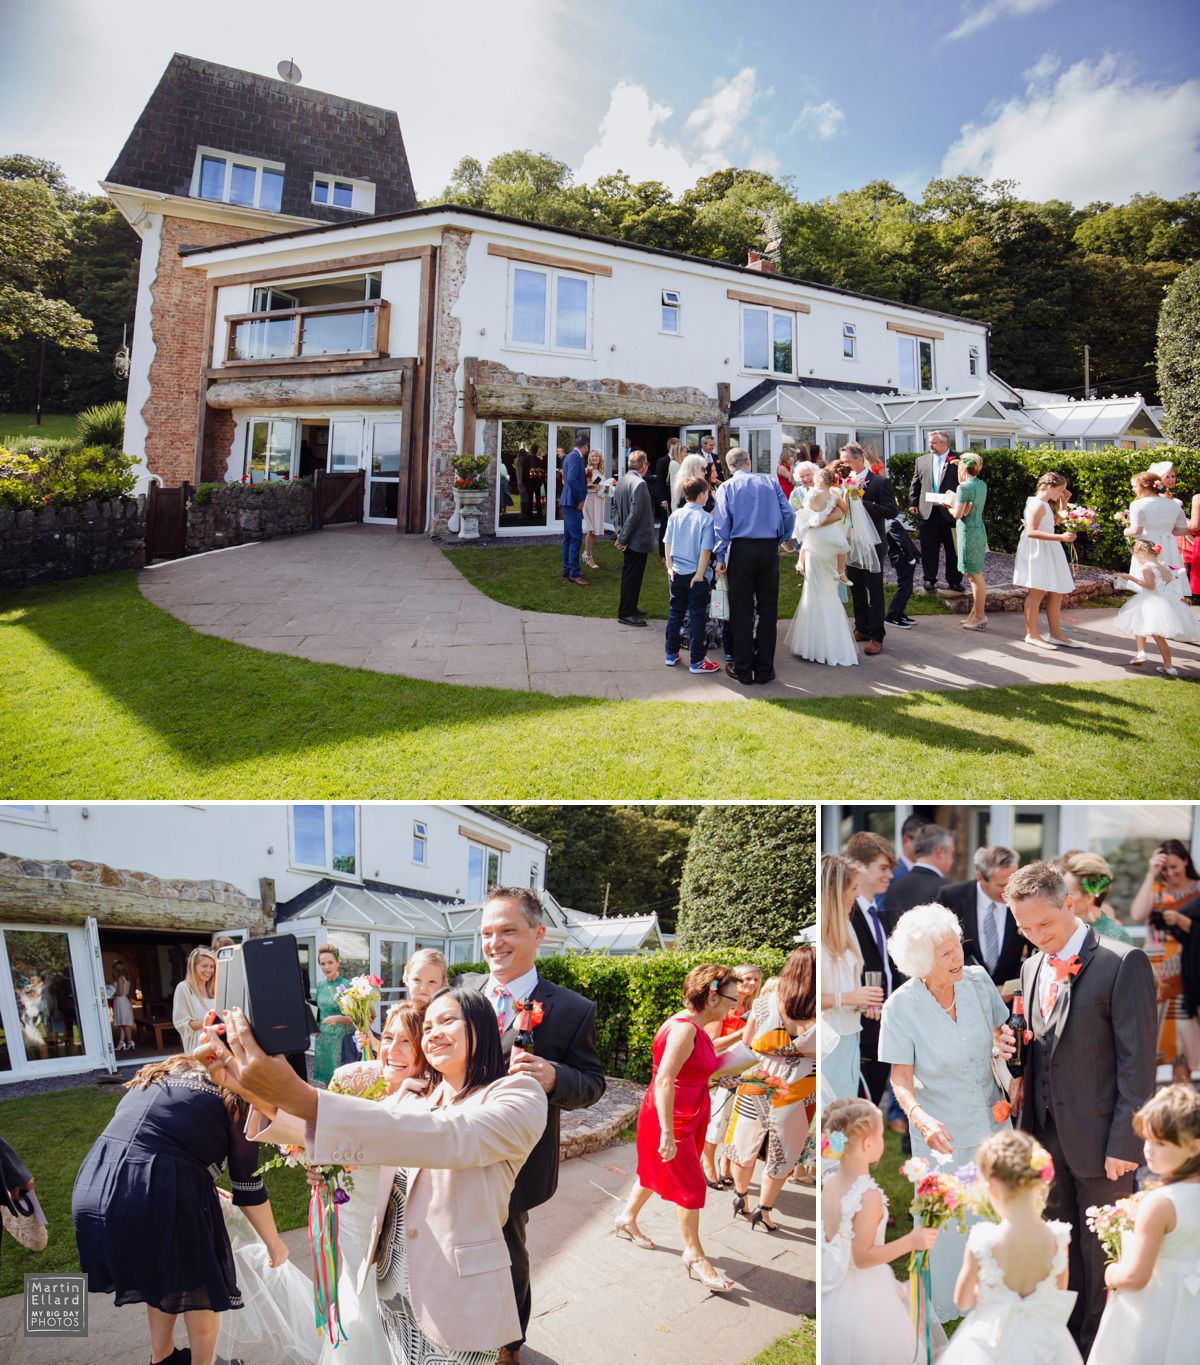 Summer weddings at The Oxwich Bay